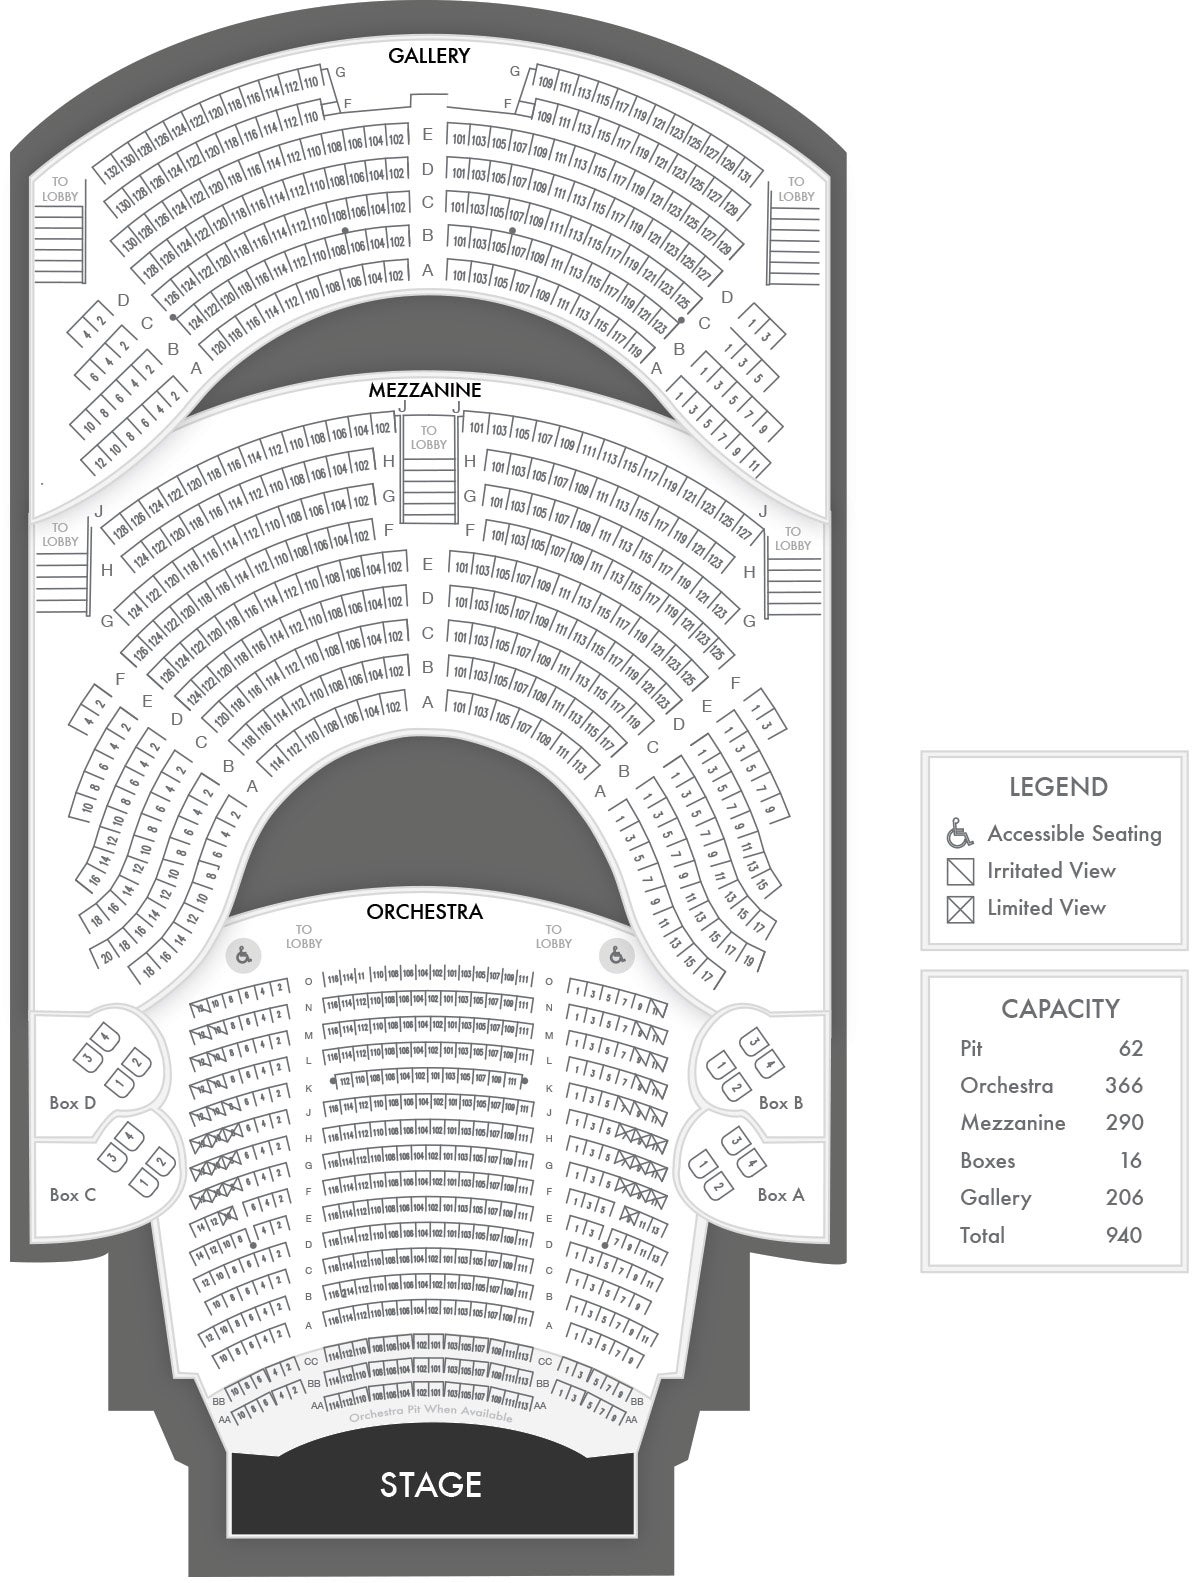 Loh Seatingchart 103102017 Jpg Opera House Challenges And Solutions